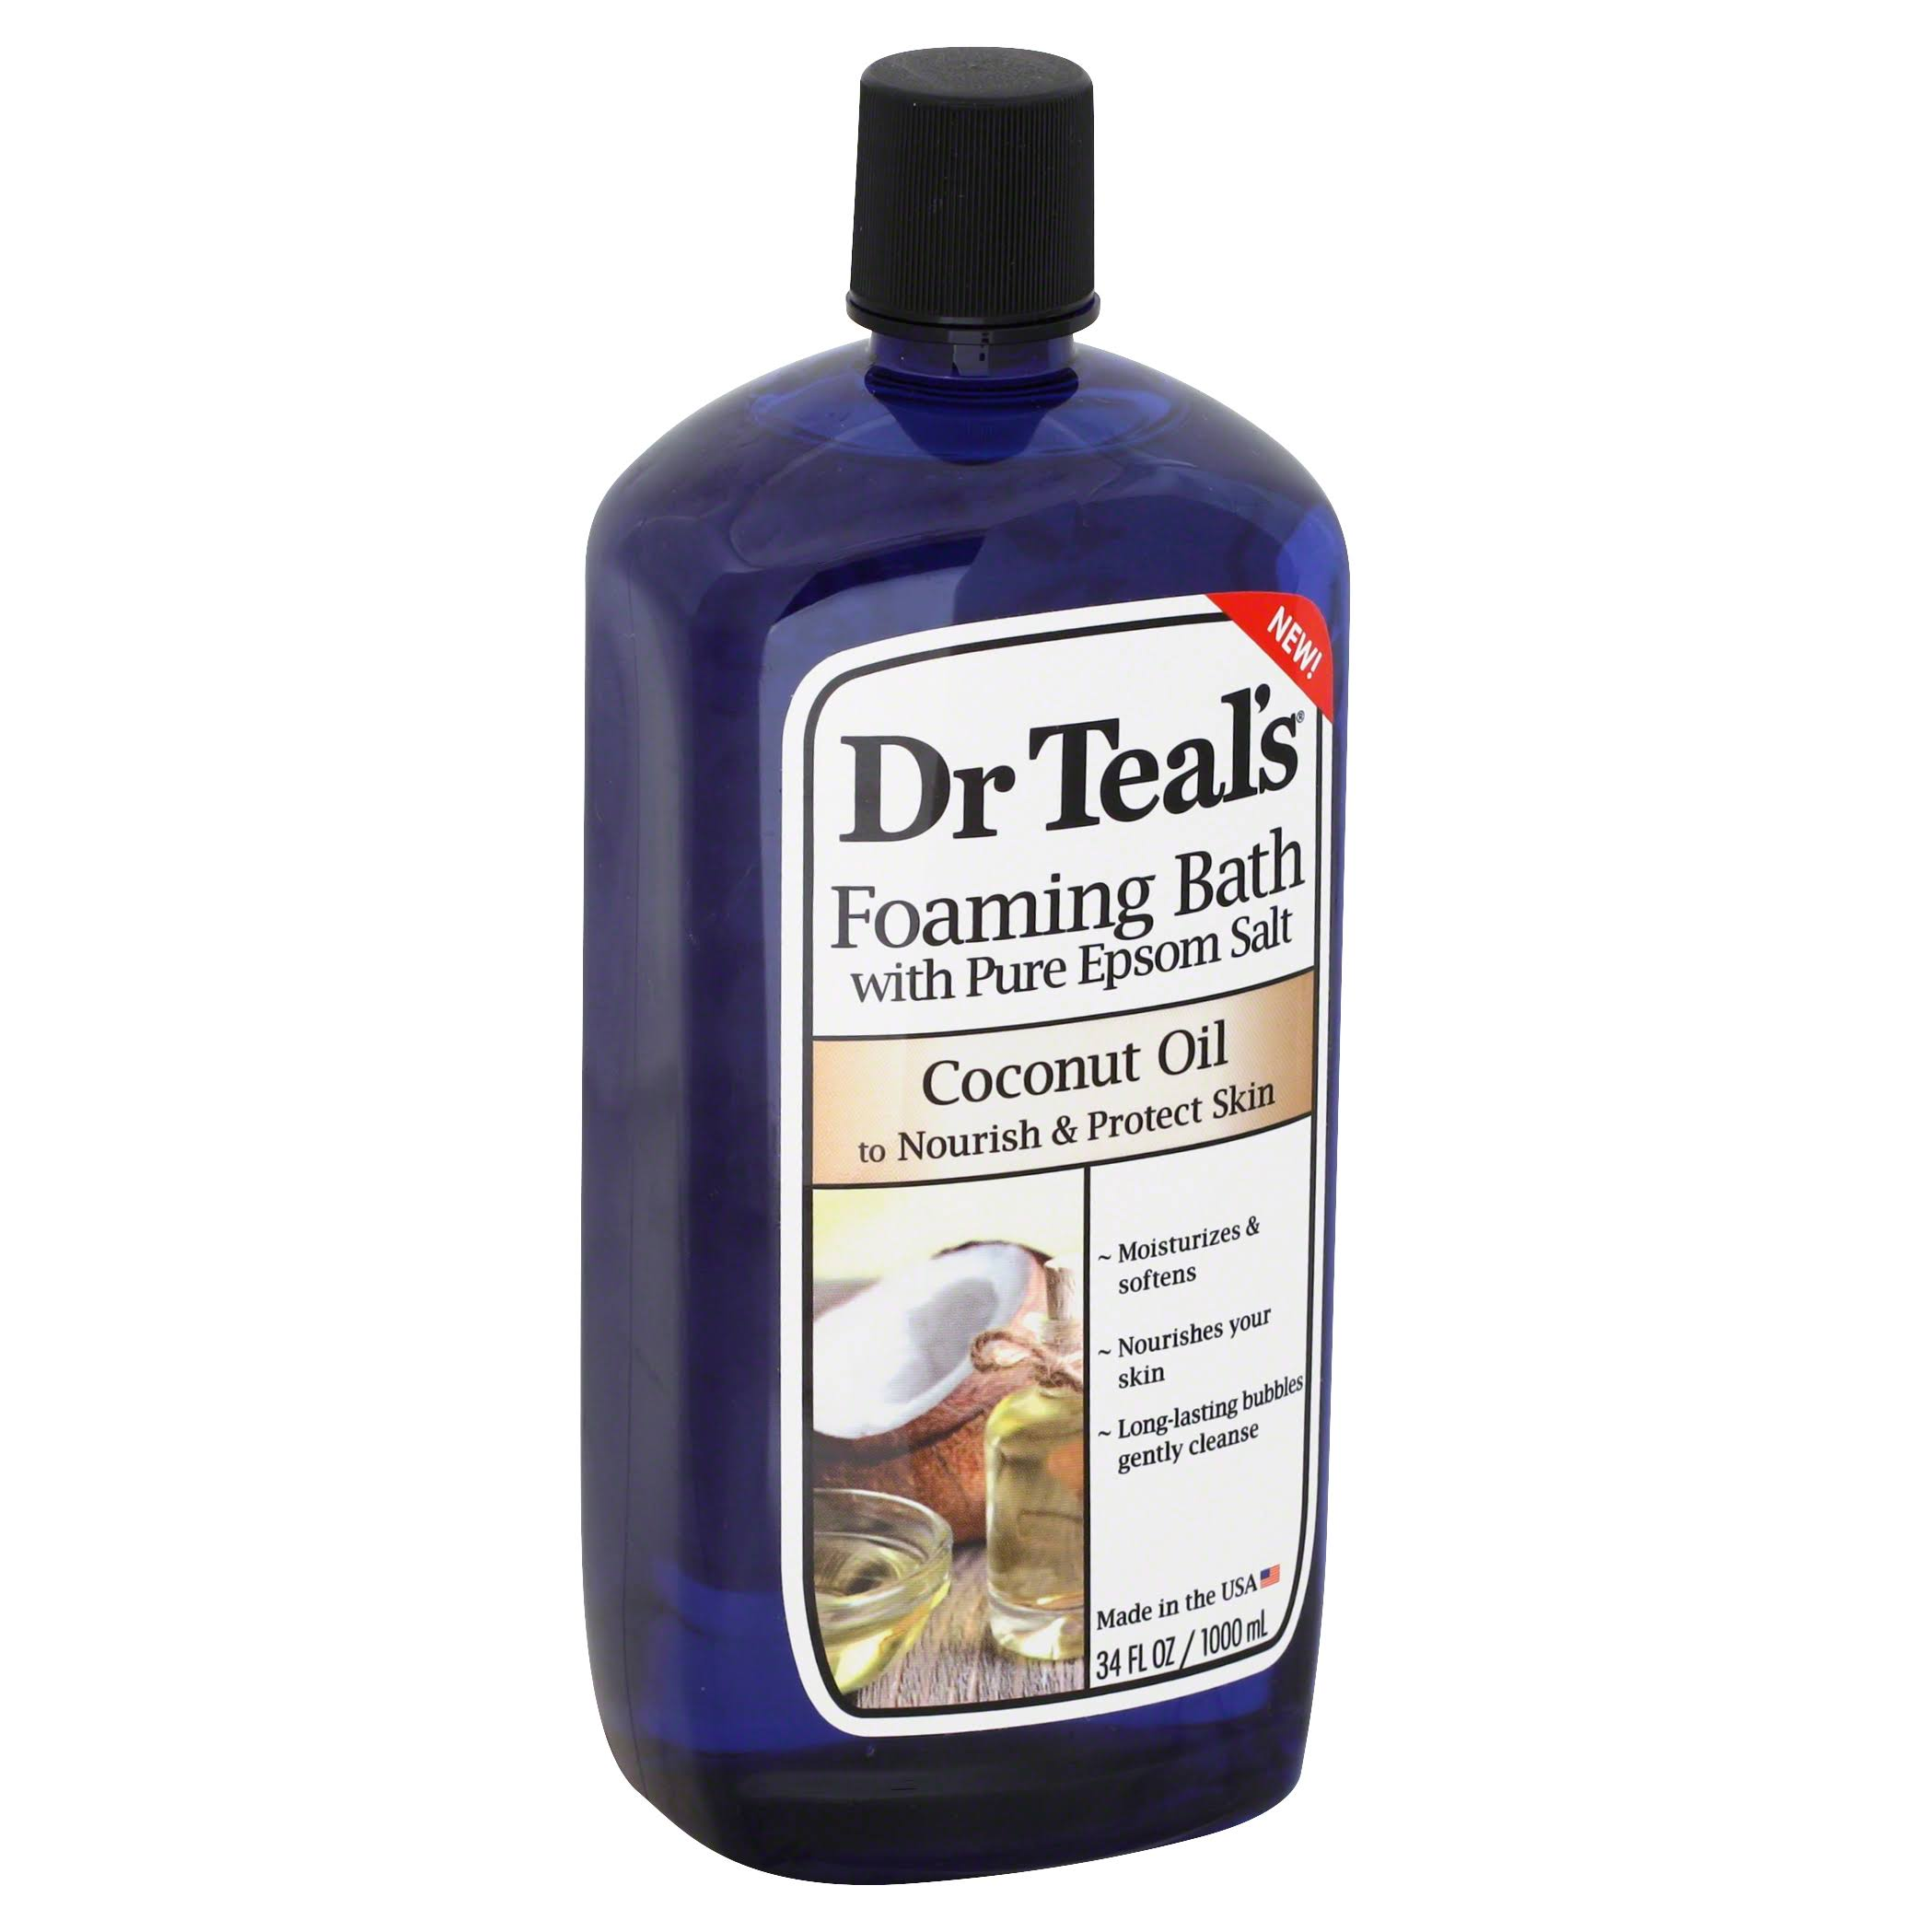 Dr Teal's Foaming Bubble Bath - With Pure Epsom Salt and Coconut Oil, 34oz